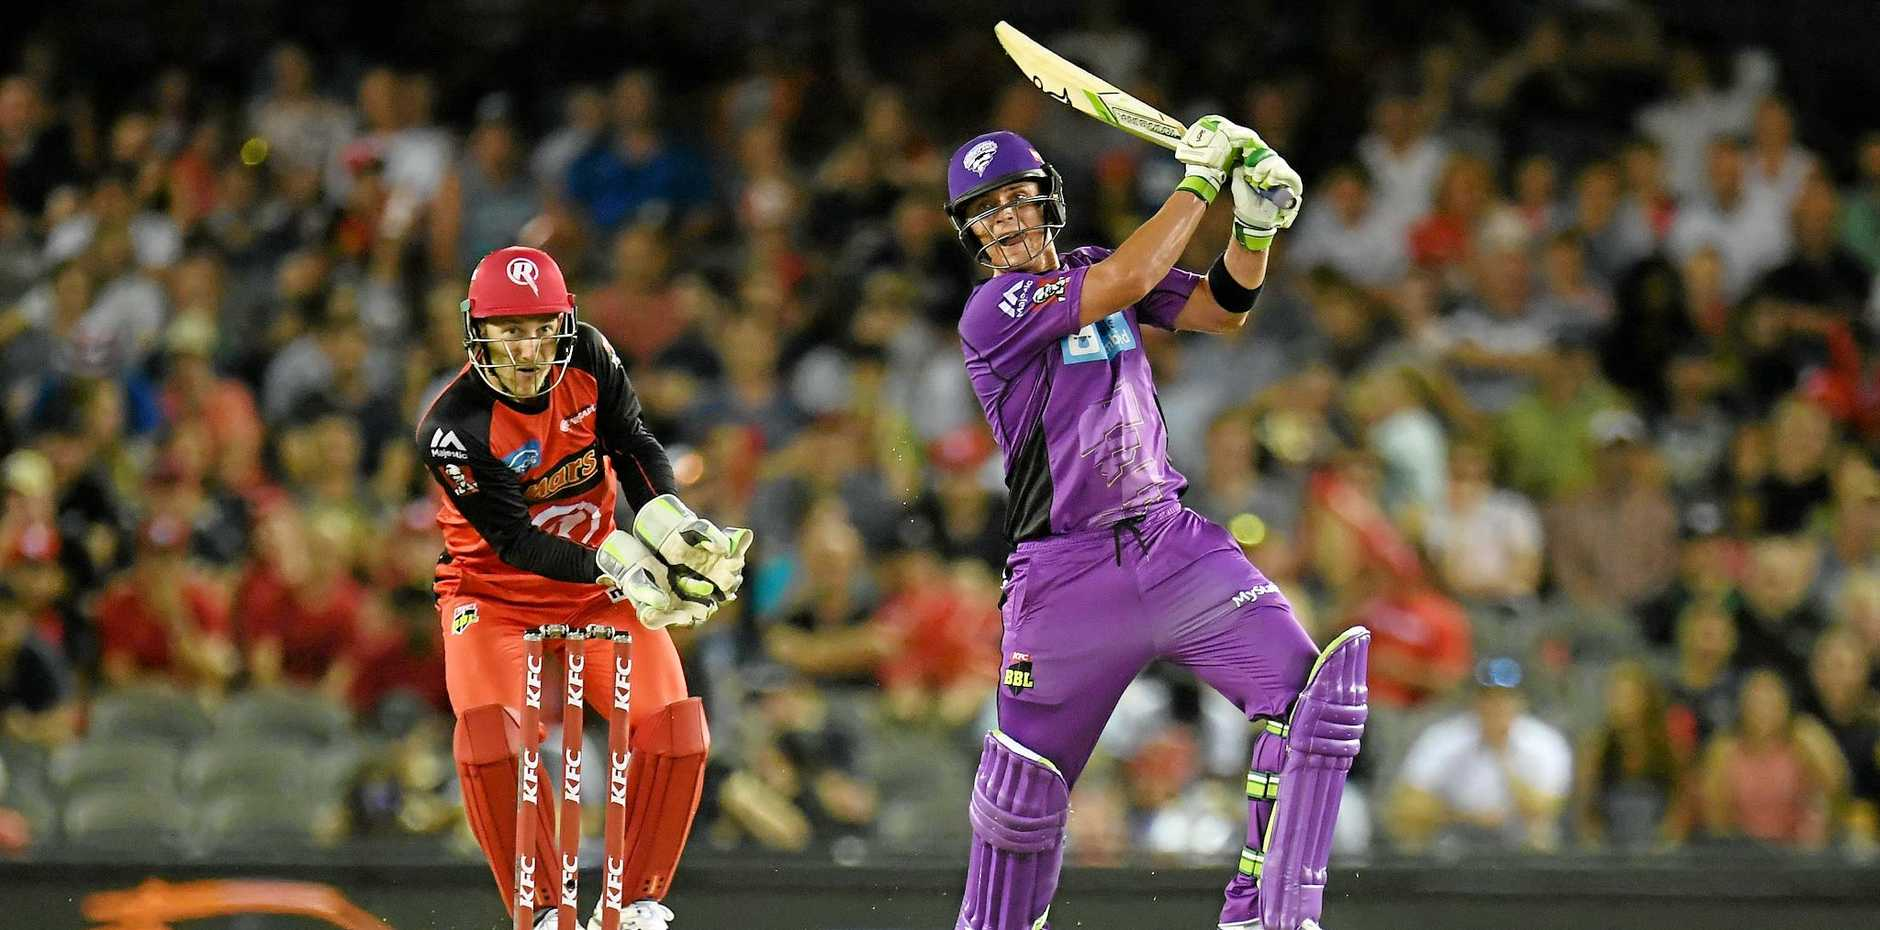 Ben McDermott of the Hurricanes (right) plays a shot during the Big Bash League match against the Melbourne Renegades at Etihad Stadium.